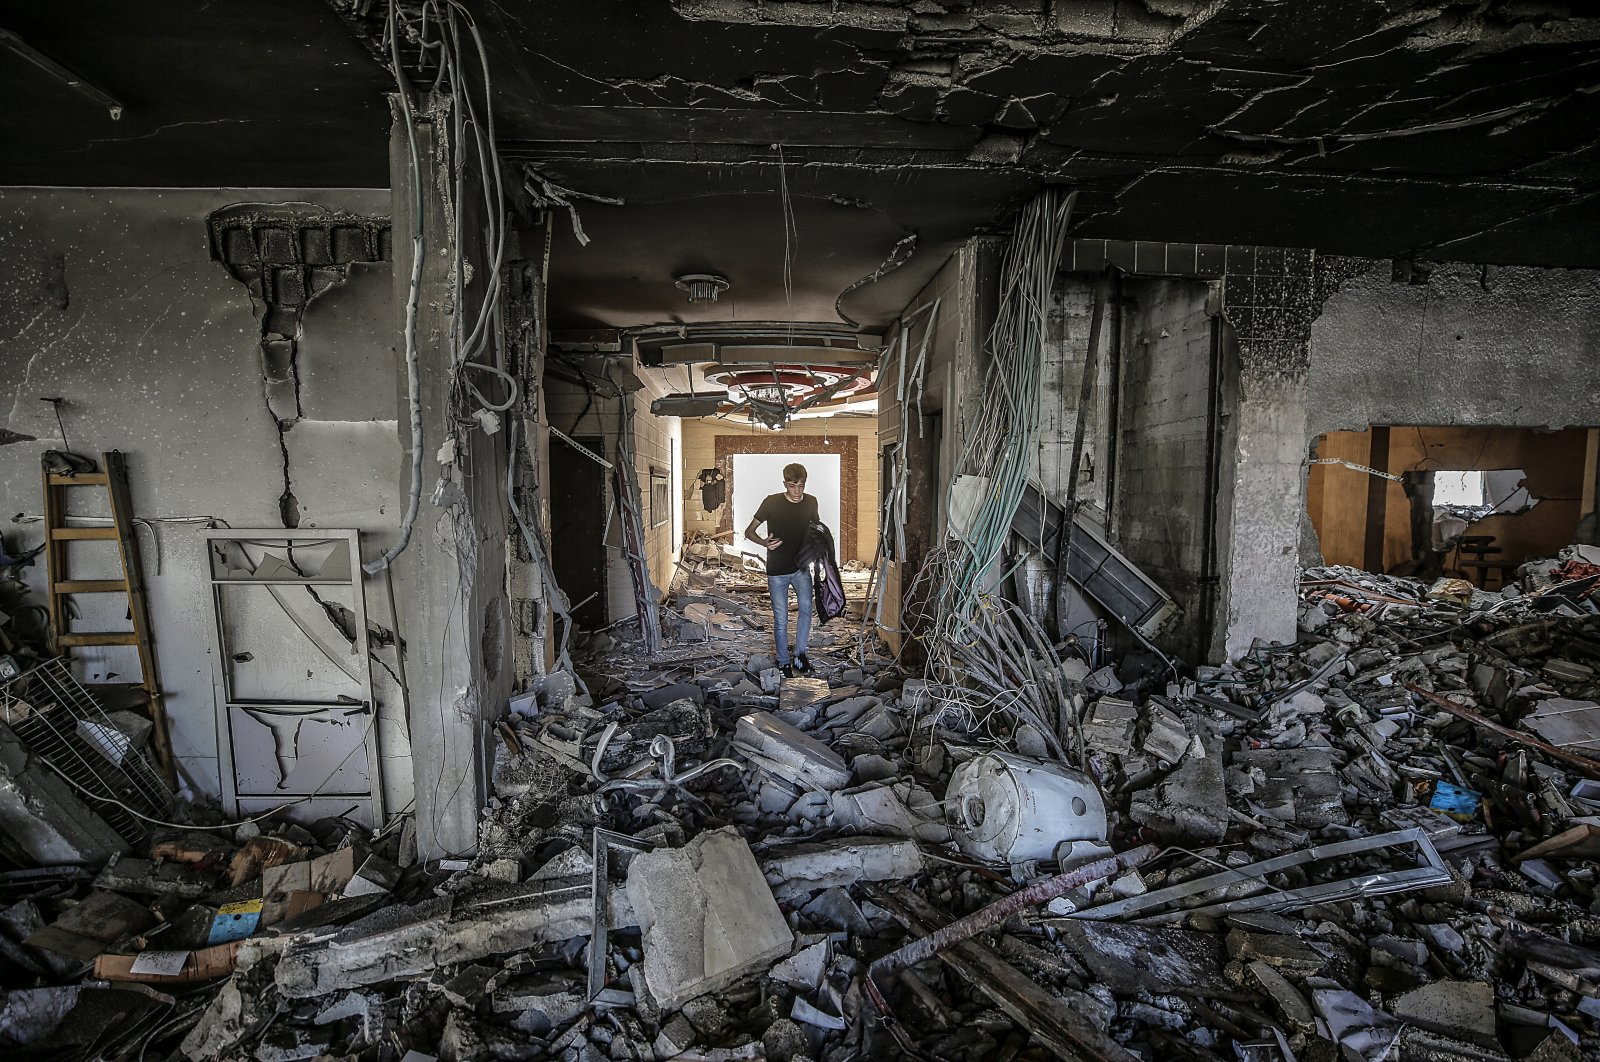 A Palestinian inspects his destroyed house after Israeli airstrikes in Gaza Strip, Palestine, May 20, 2021. (EPA Photo)